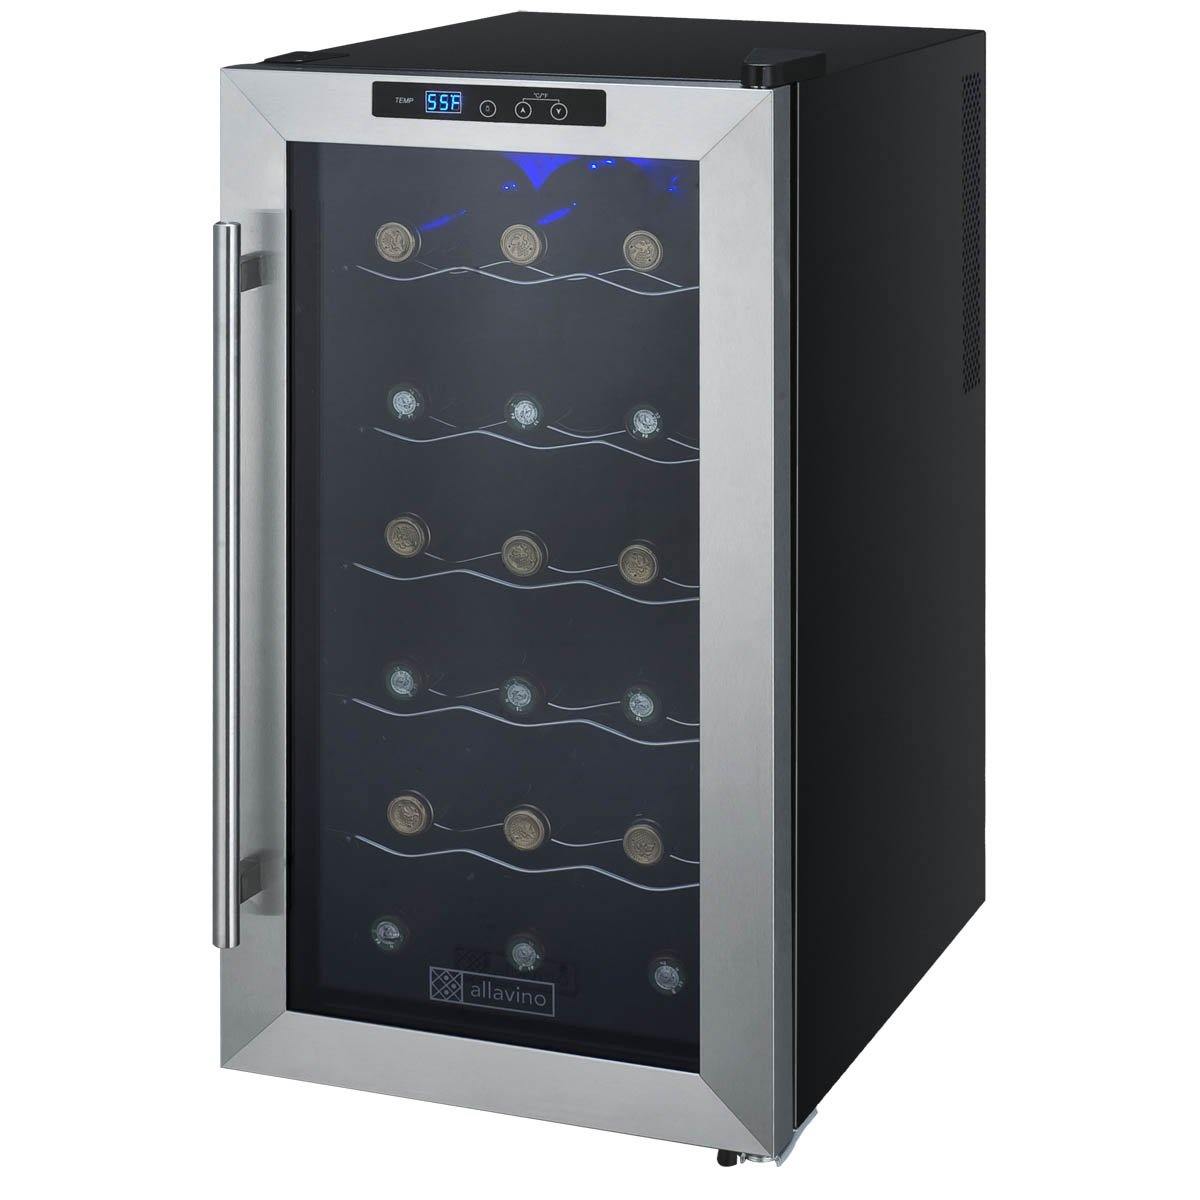 18 Bottle Thermoelectric Wine Refrigerator